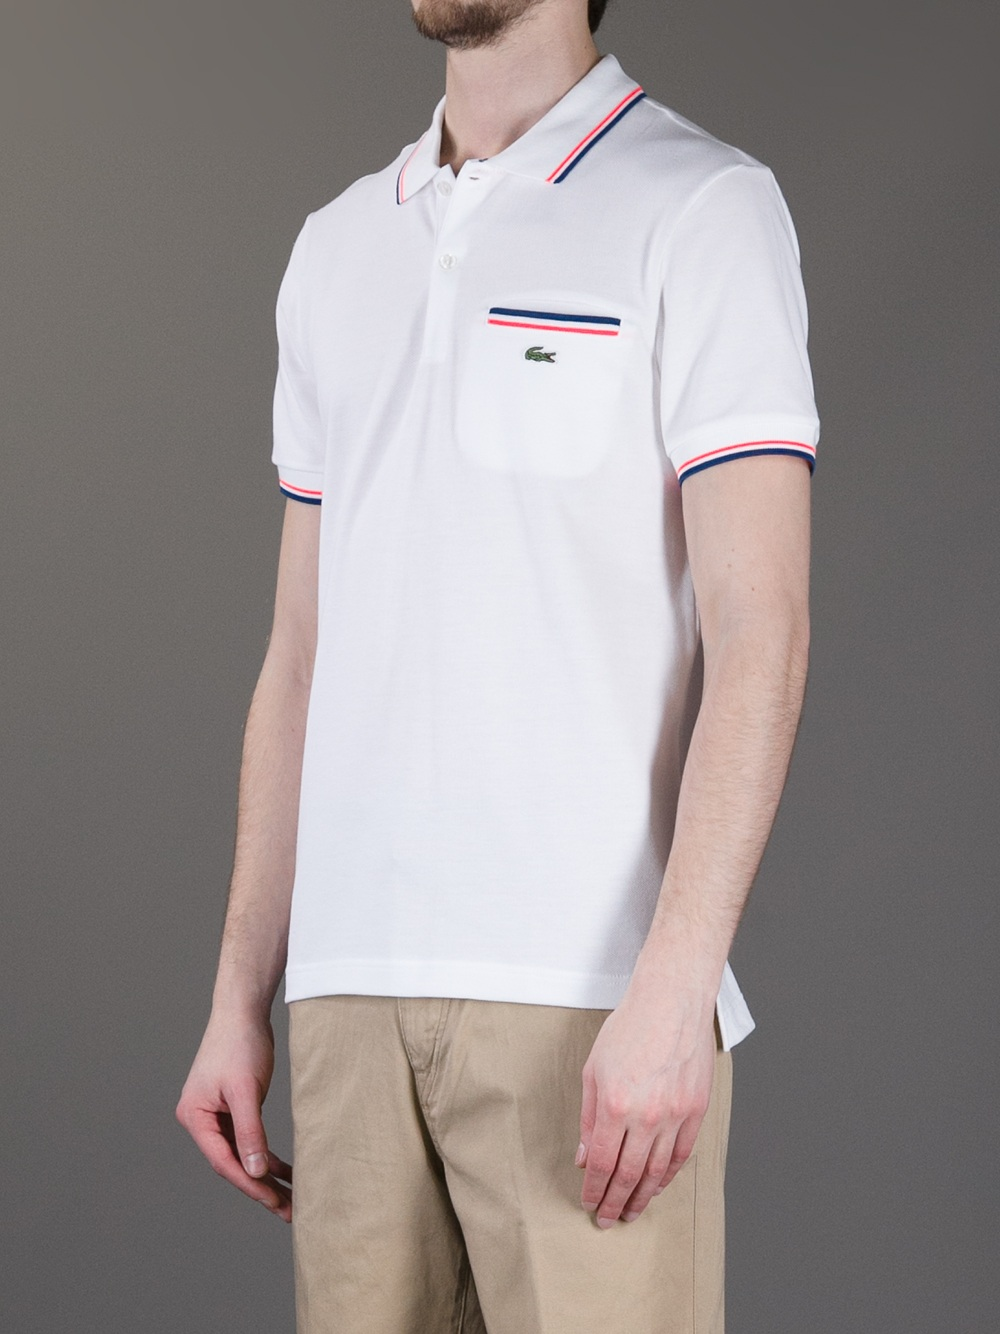 lacoste l ive polo shirt with pocket in white for men lyst. Black Bedroom Furniture Sets. Home Design Ideas